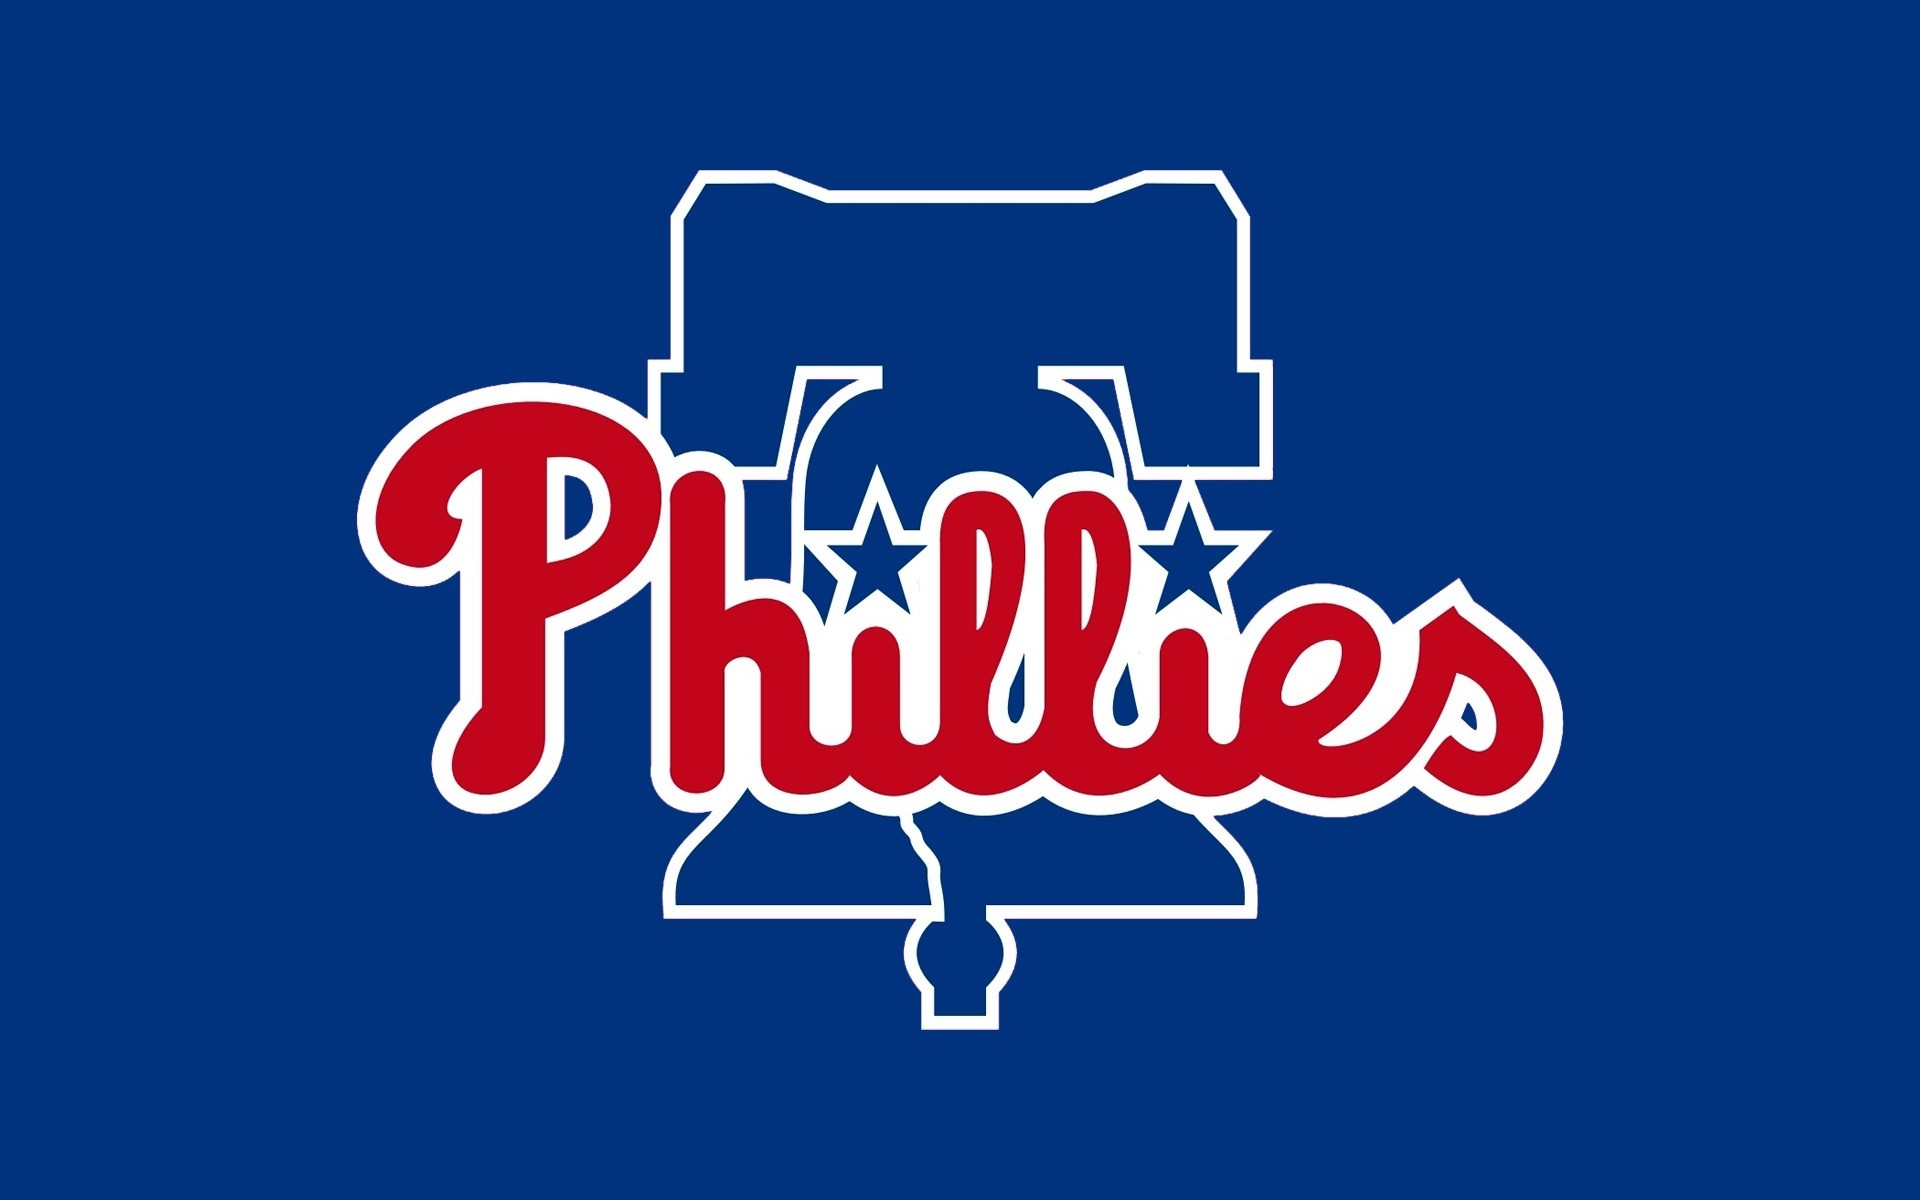 1920x1200 Philadelphia Phillies Browser Themes and Desktop/iPhone Wallpaper for the Biggest Phanatics - Brand